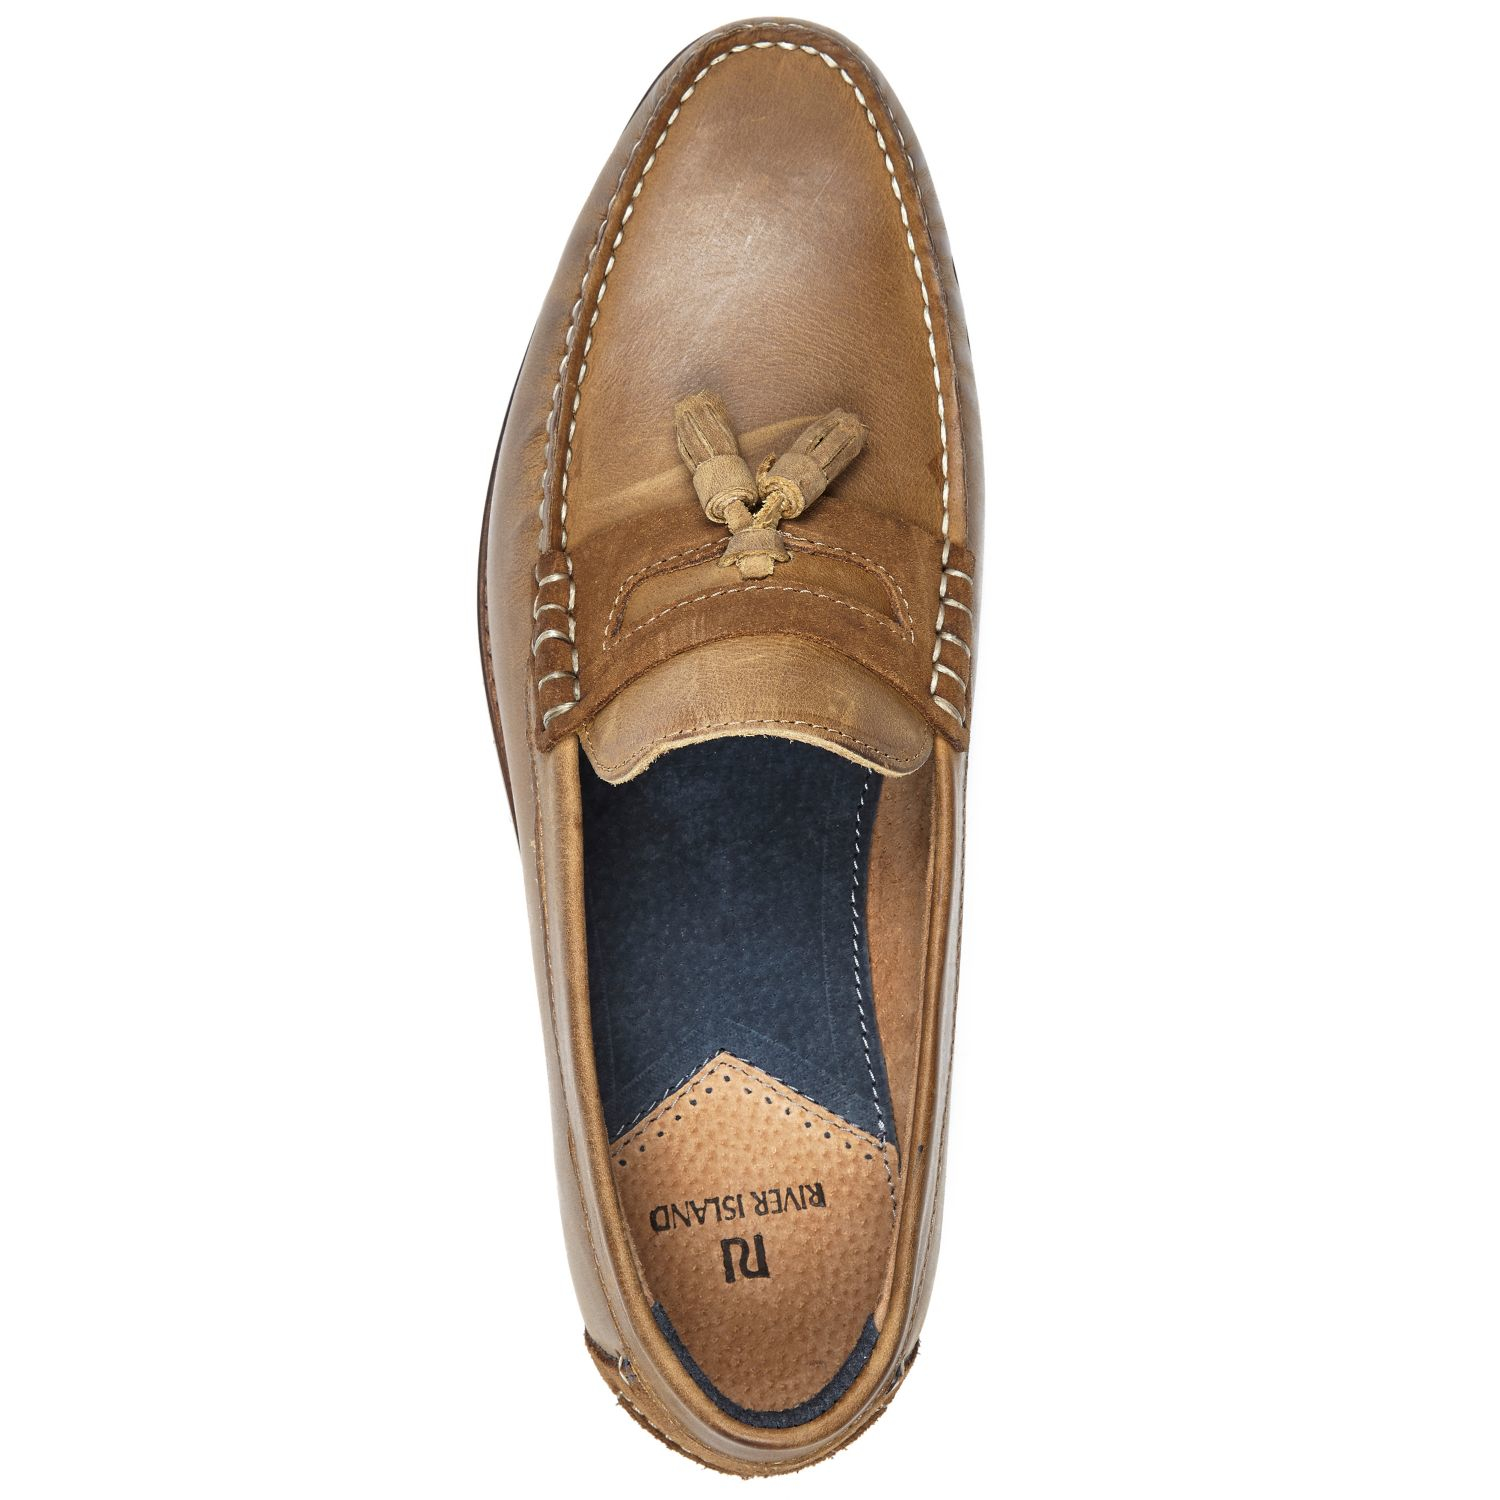 5db391fd2dc6 River Island Brown Leather Heavy Sole Tassel Shoes in Brown for Men ...